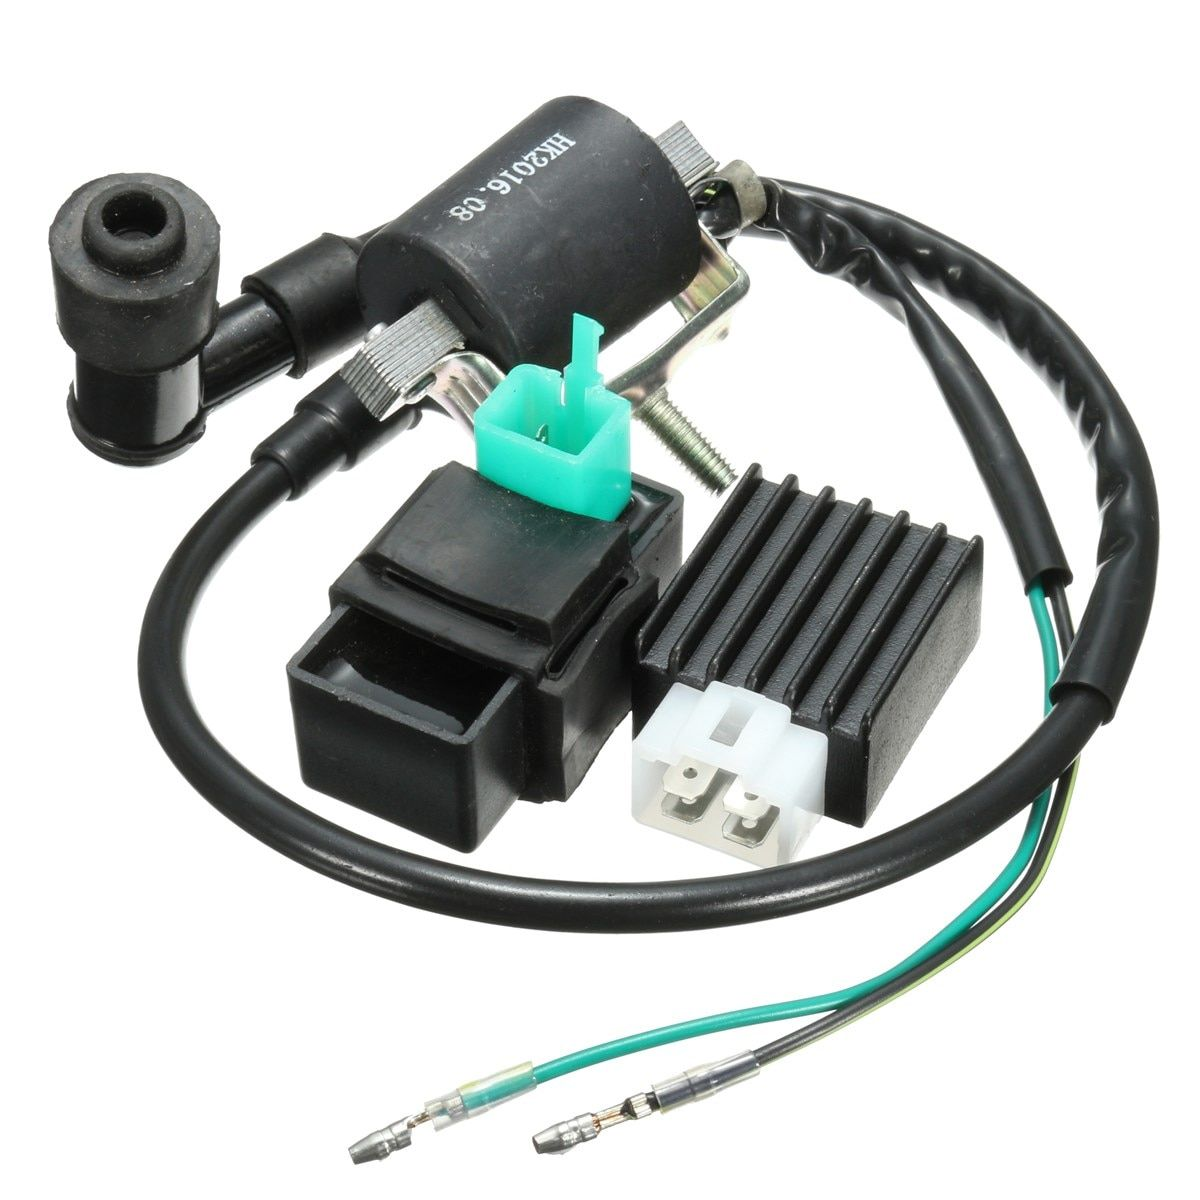 Black Ignition Coil CDI Unit Rectifier Regulator Fits for 110cc 125cc 140cc Pit Dirt Bike